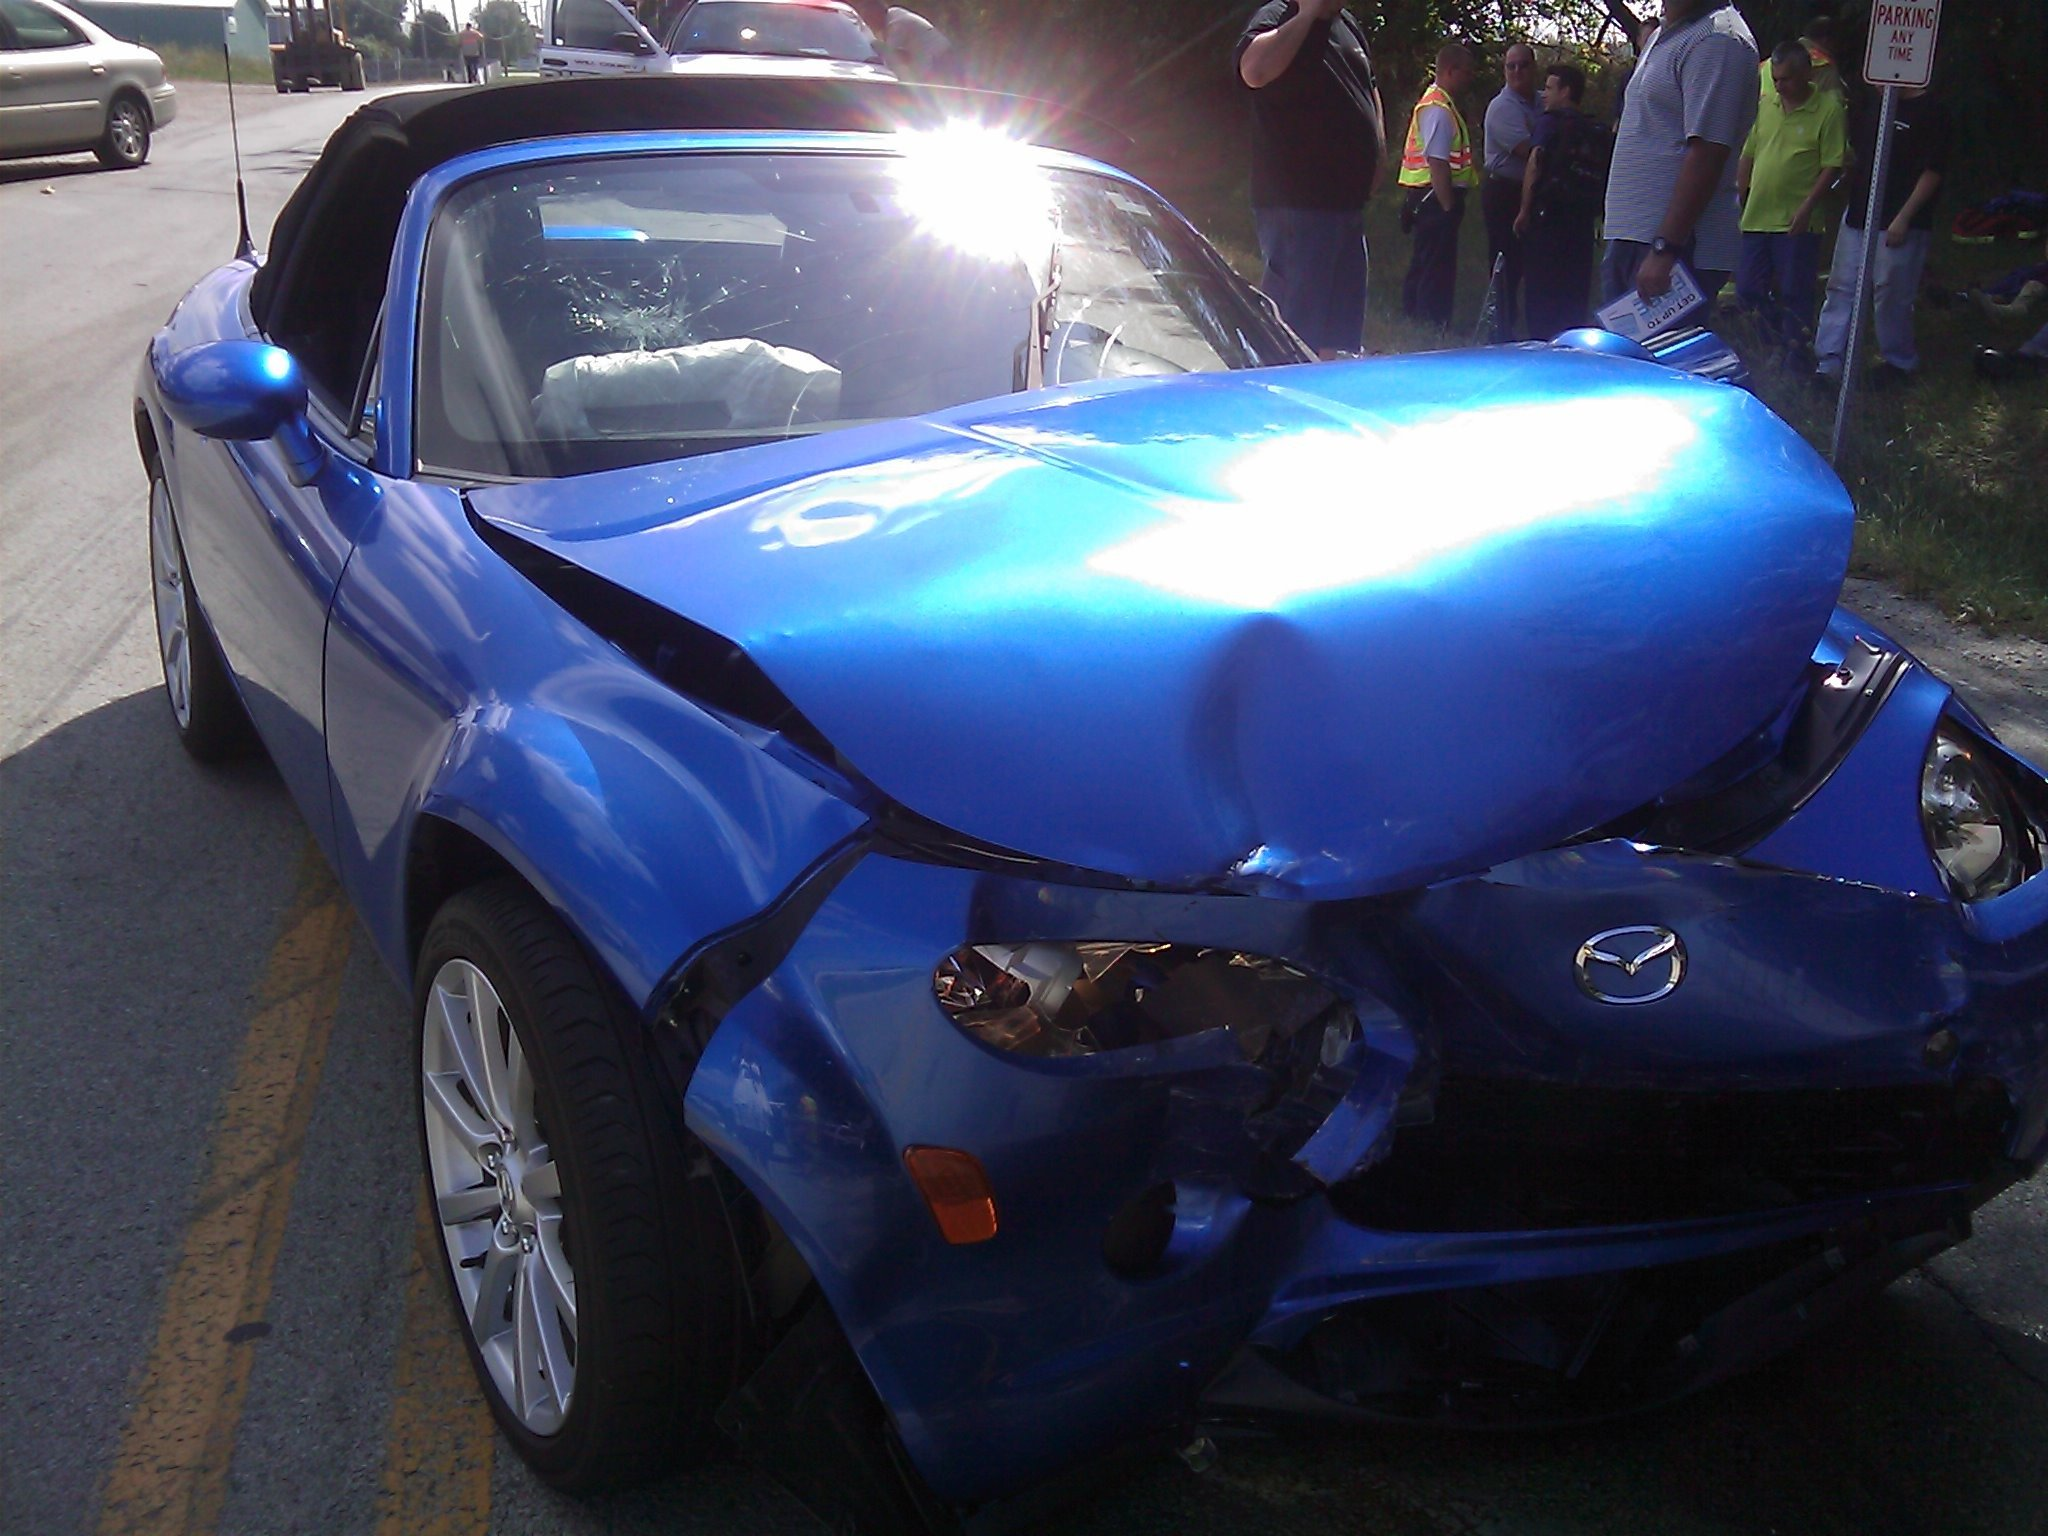 Car Accident, Automobile Accident, Car Wreck, Blue Mazda Miata Car Crash